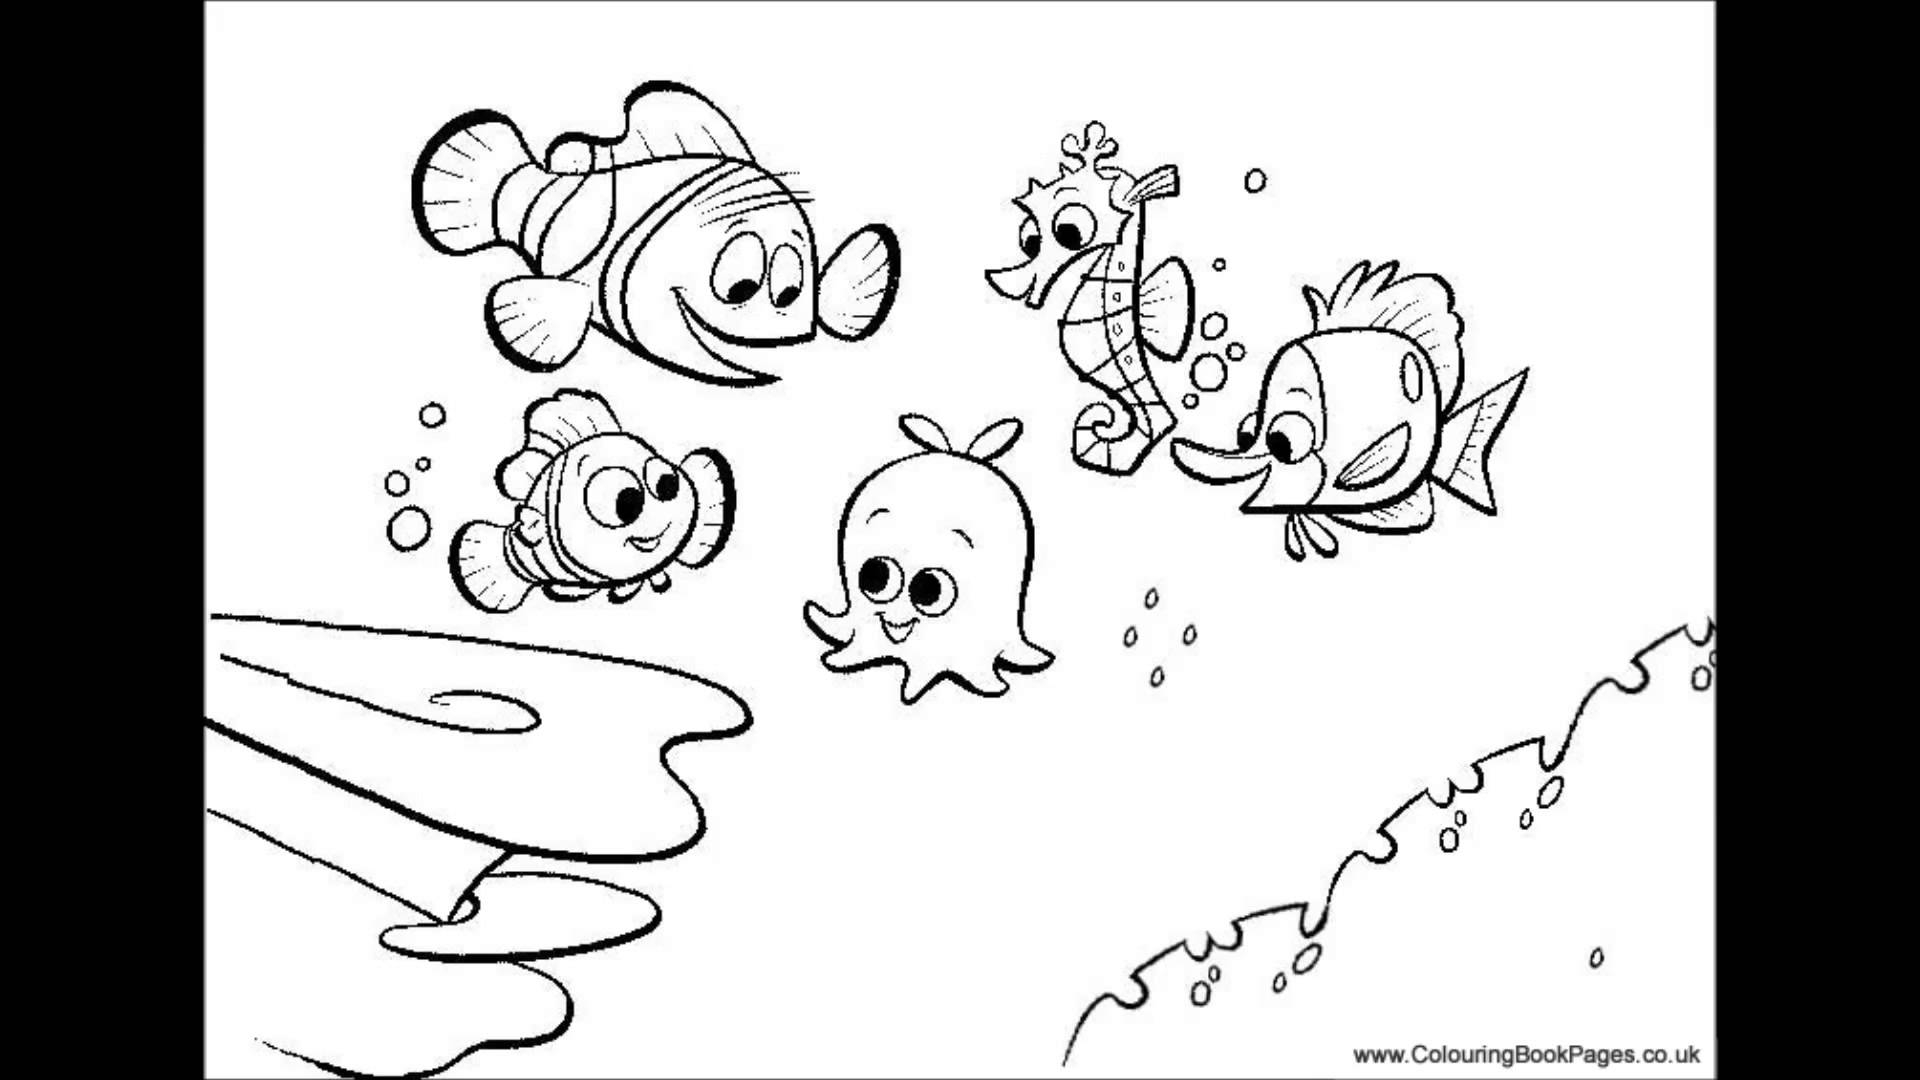 1920x1080 Disney S Finding Nemo Coloring Pages Sheet Free Disney Printable